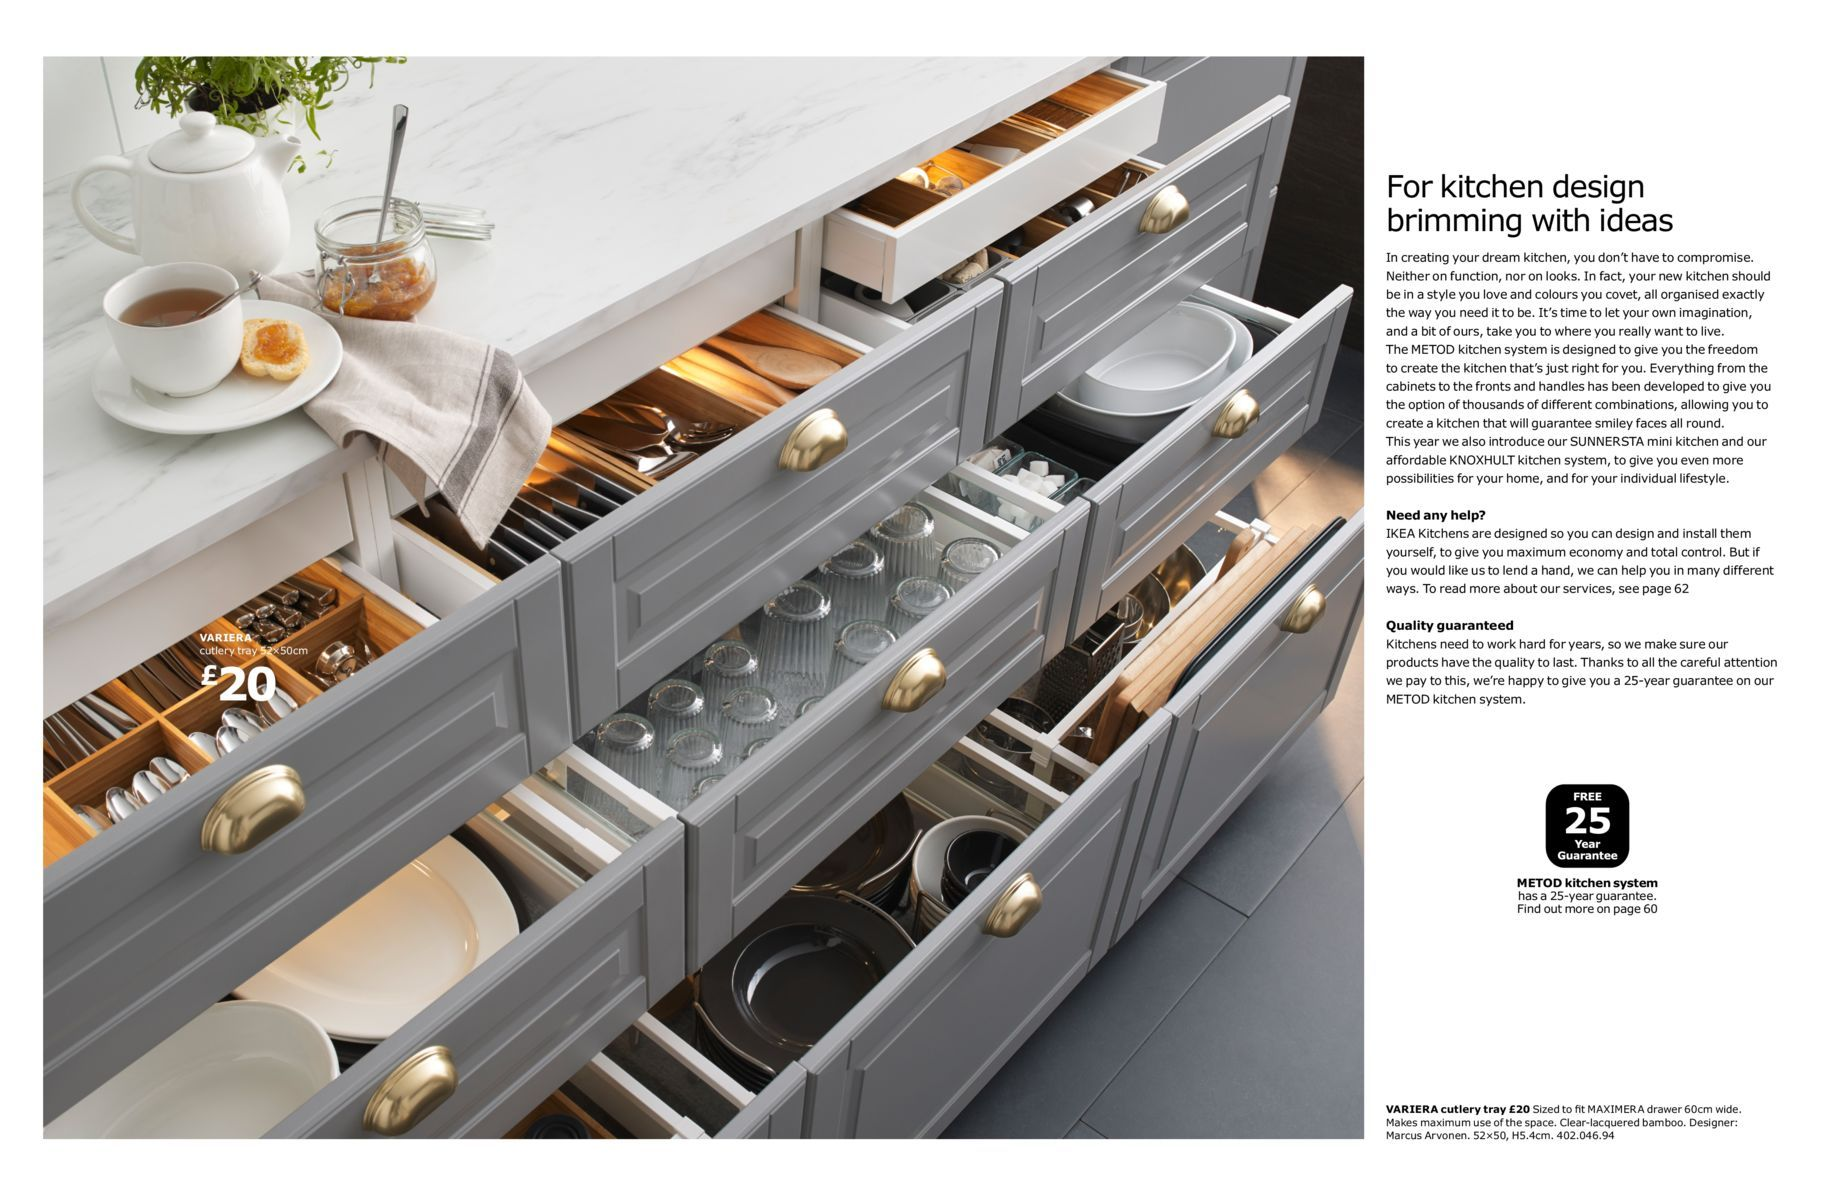 Ikea Kitchens 2017 Ikea Kitchen Brochure 2017 Ekbacken White Marble Laminate